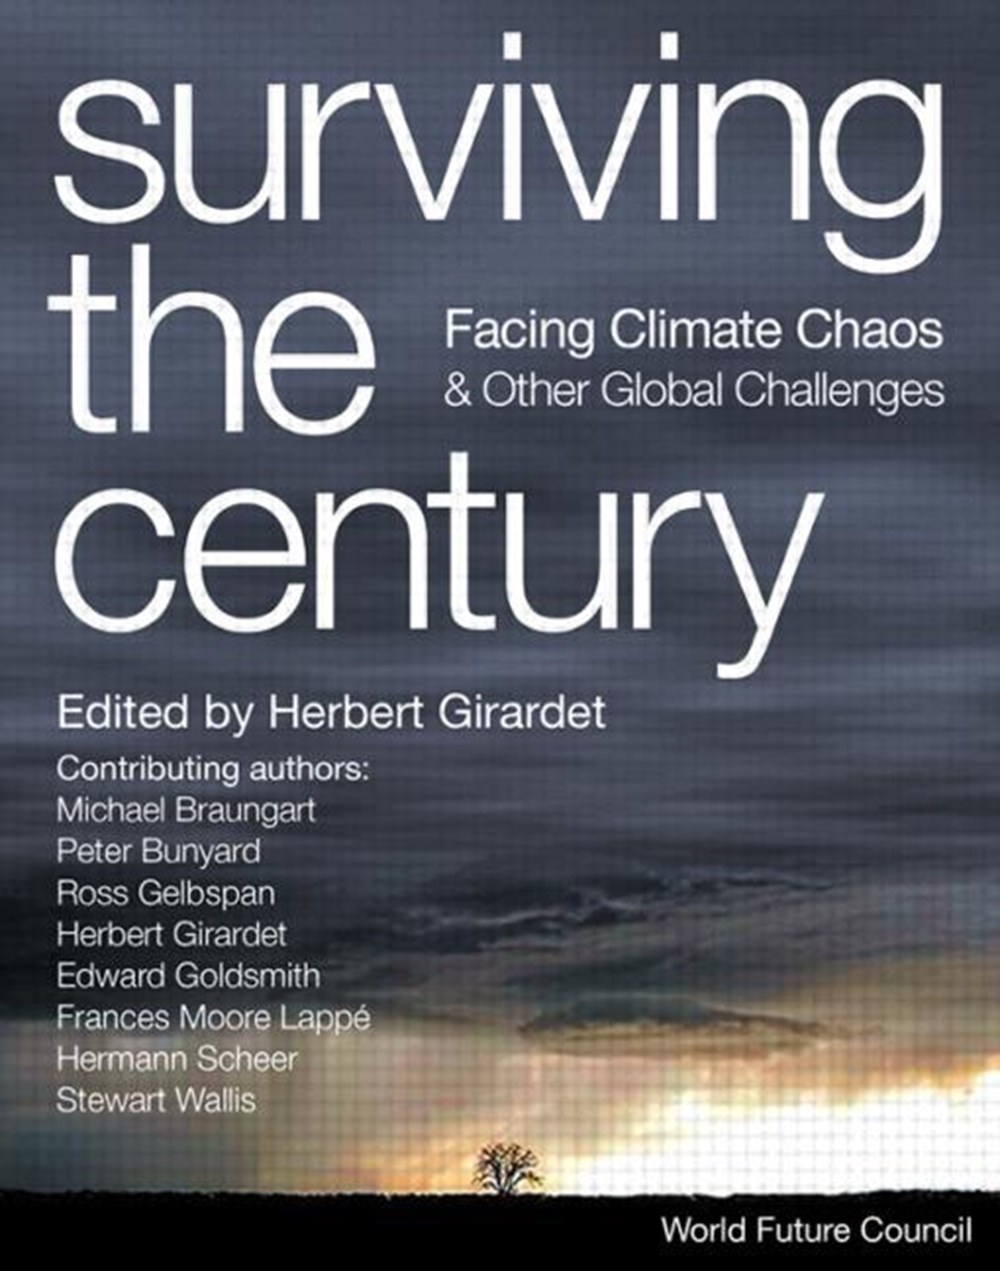 Surviving the Century Facing Climate Chaos and Other Global Challenges